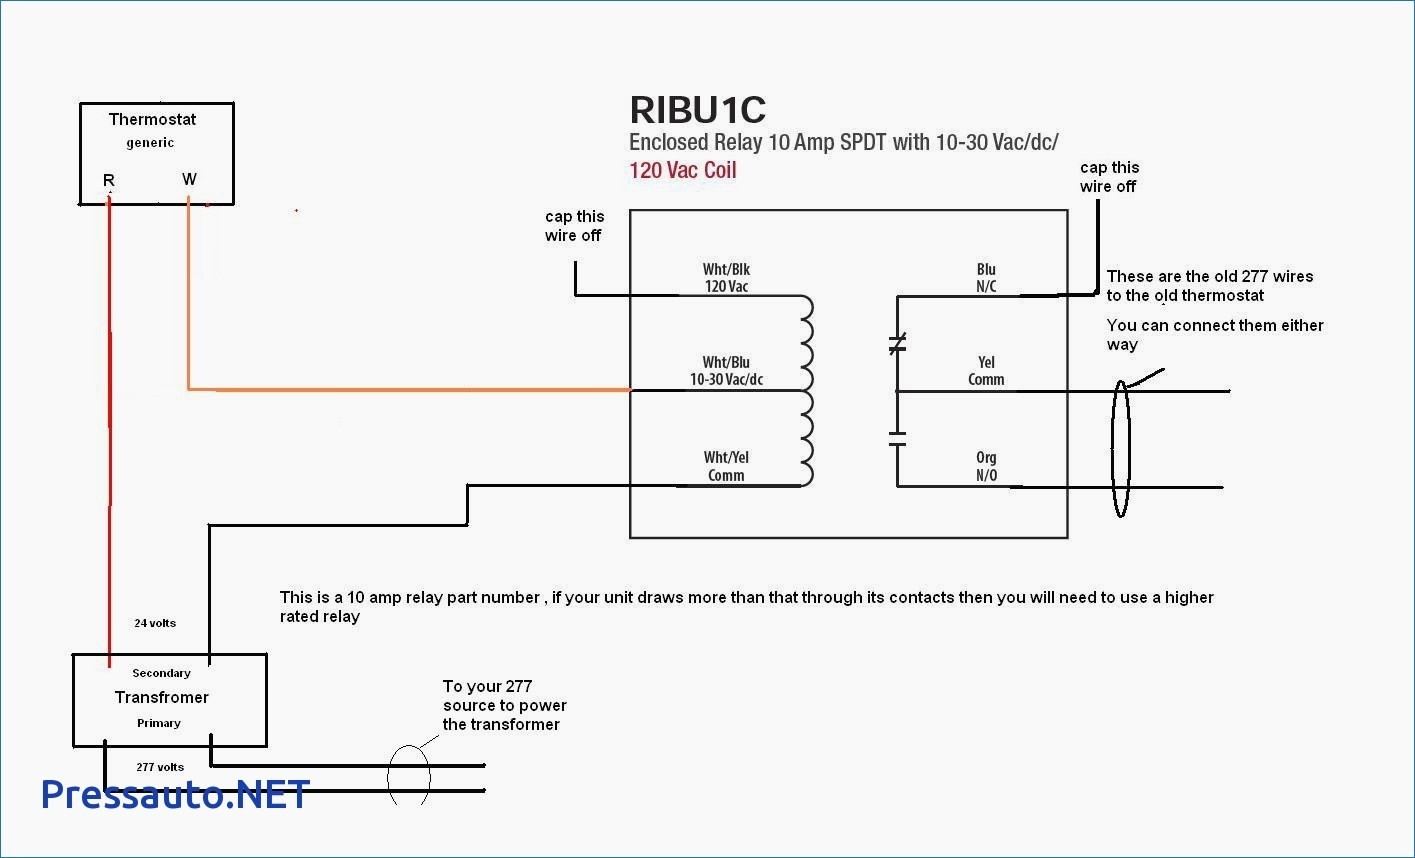 ribu1c wiring diagram Collection-ribu1c wiring diagram Download gallery of Ribu1c Wiring Diagram 8 b DOWNLOAD Wiring Diagram 15-g